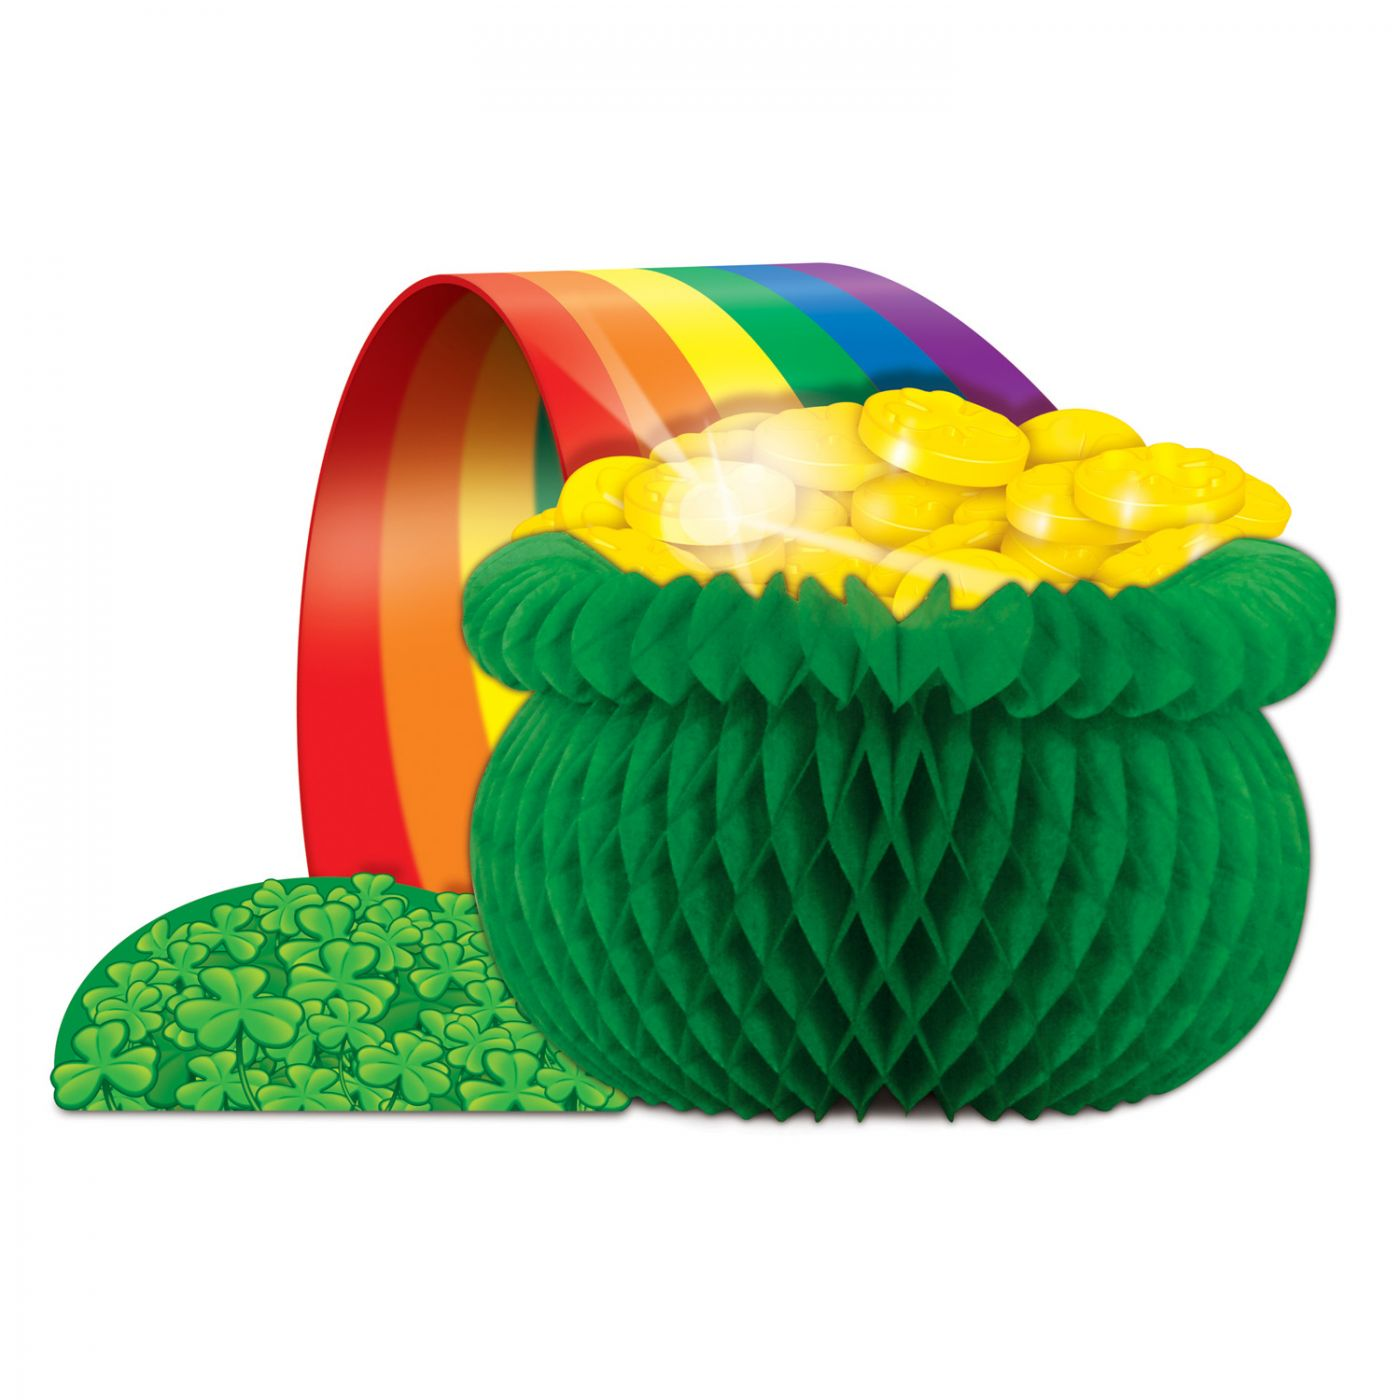 Pot O' Gold Centerpiece image